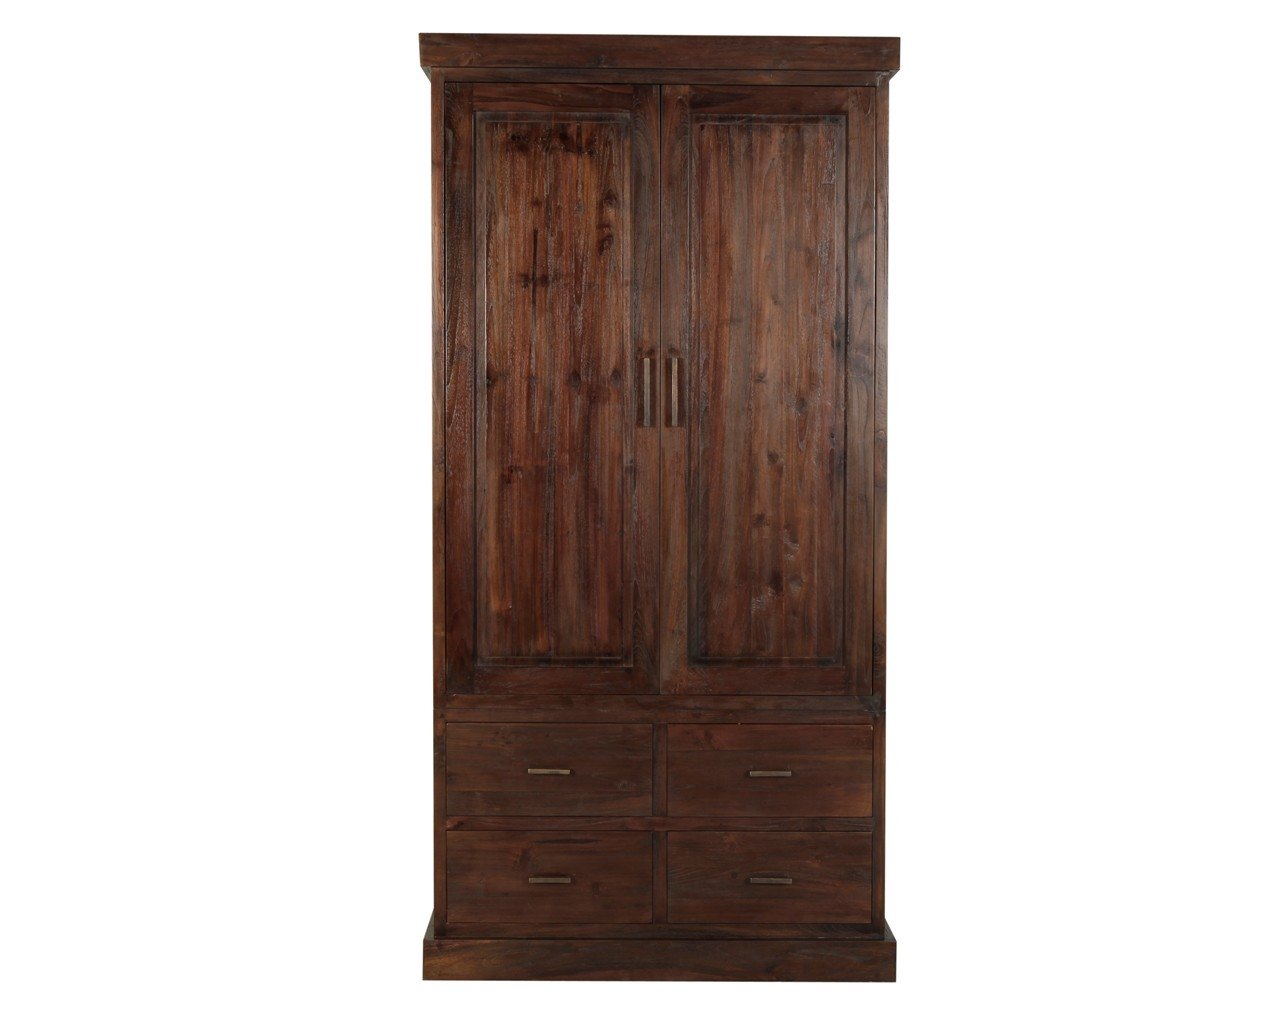 Puji Reclaimed Teak Wardrobes Dark Wood Gents Wardrobe Regarding Dark Wood Wardrobes (Image 11 of 15)